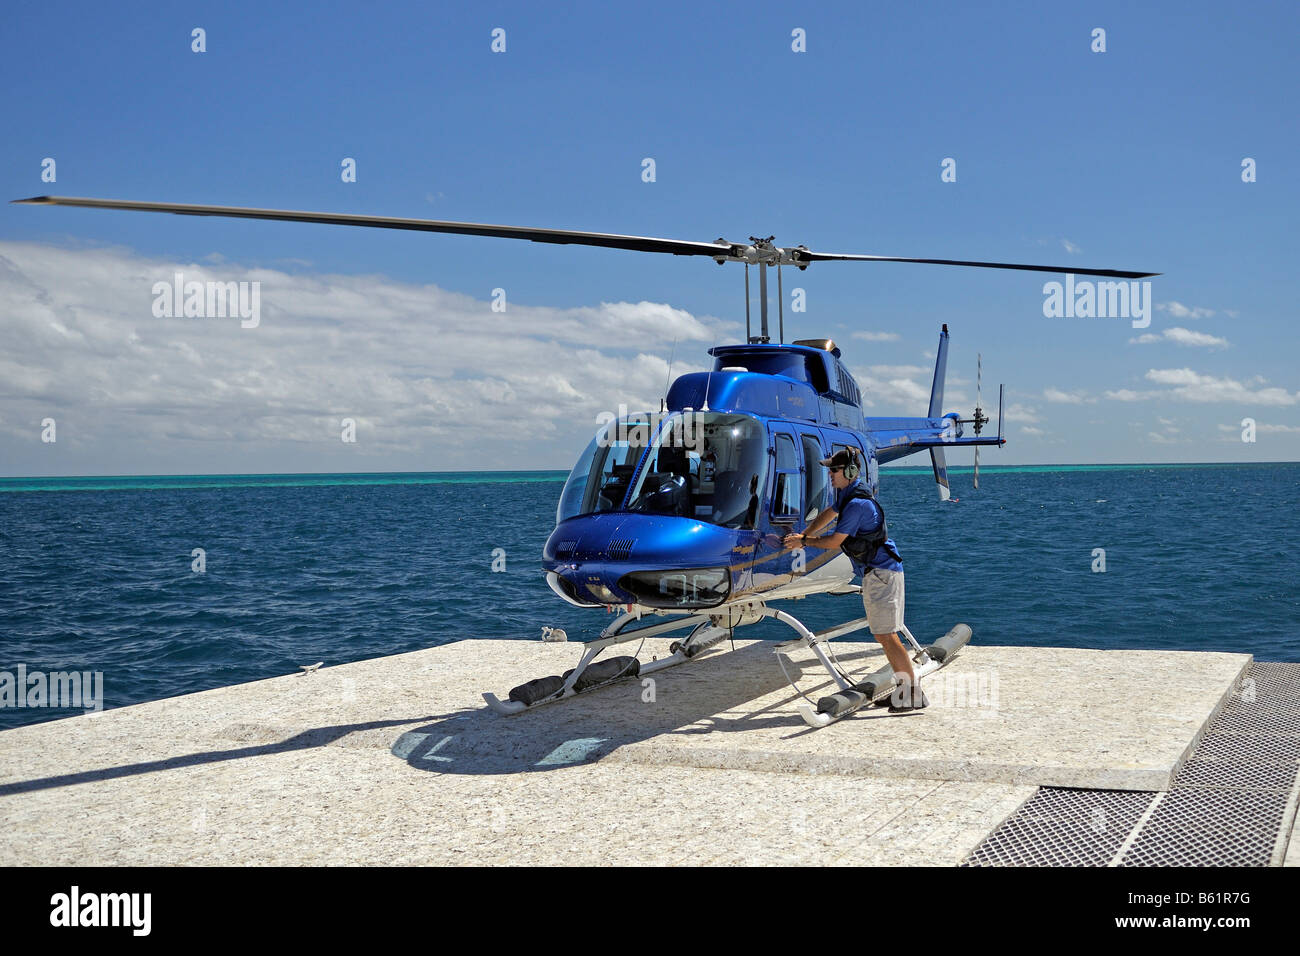 Helicopter for sightseeing flights on a pontoon in the Great Barrier Reef, Australia - Stock Image